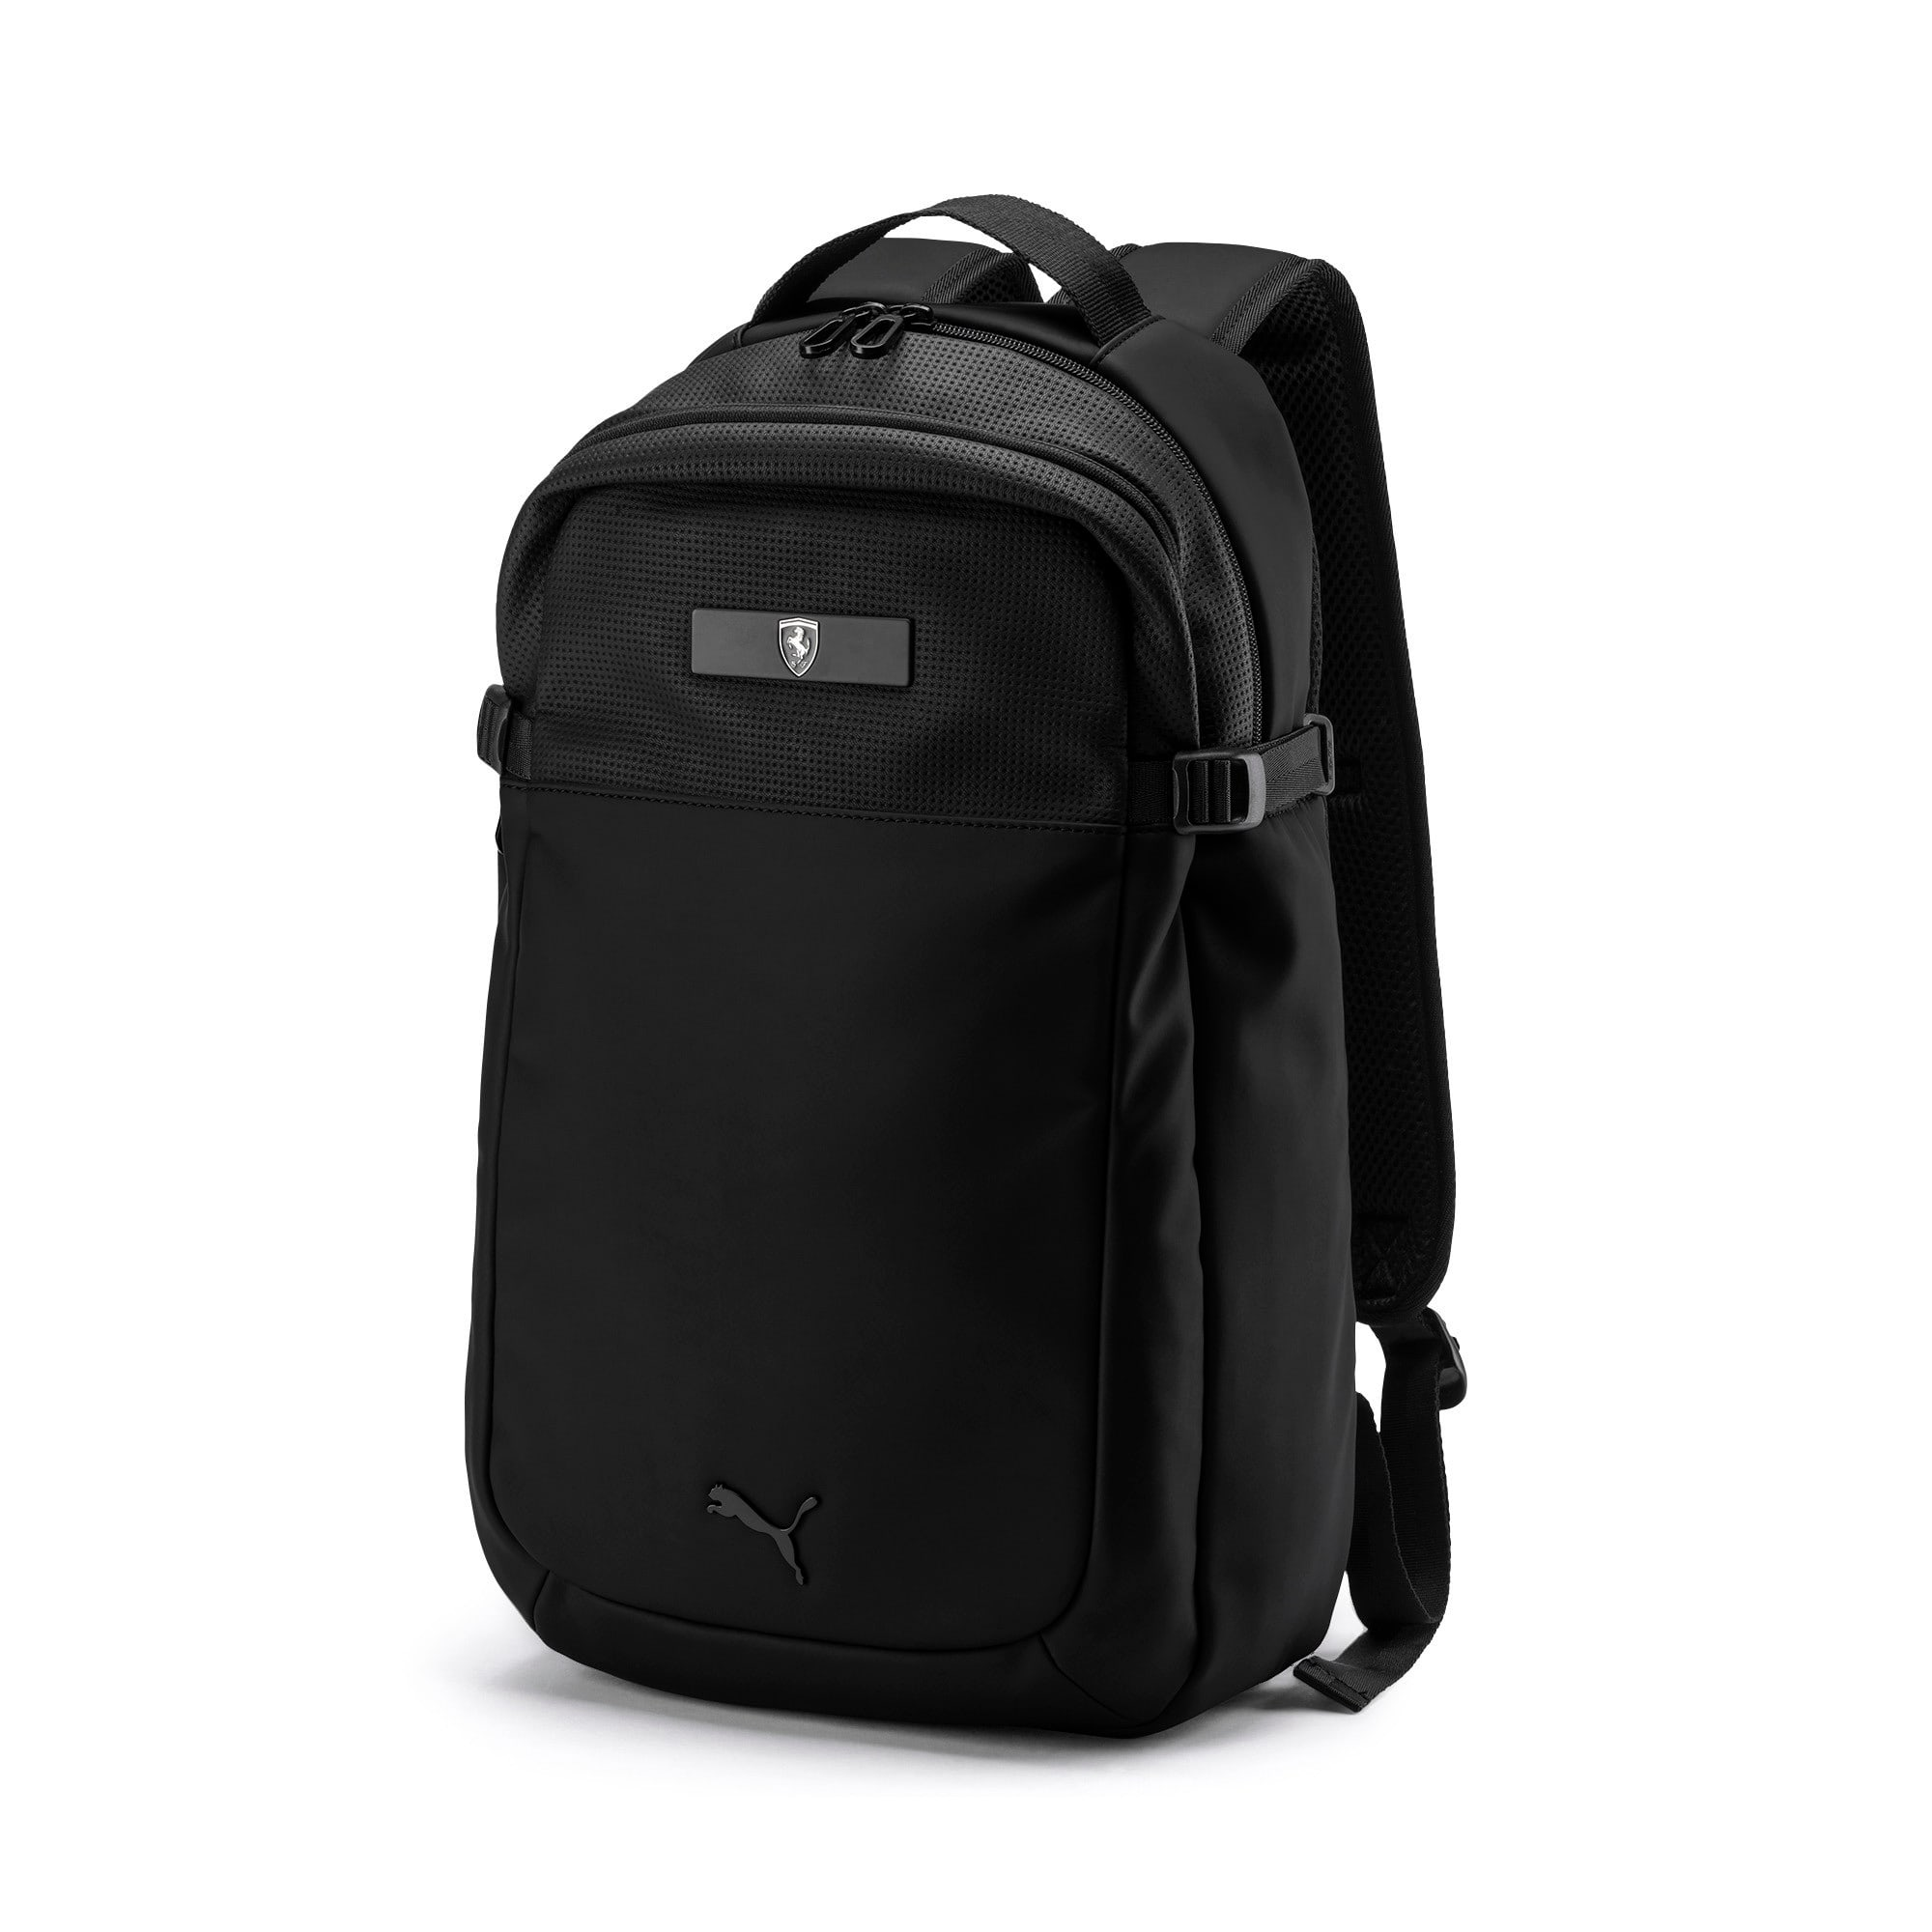 Thumbnail 1 of Ferrari Lifestyle Backpack, Puma Black, medium-IND